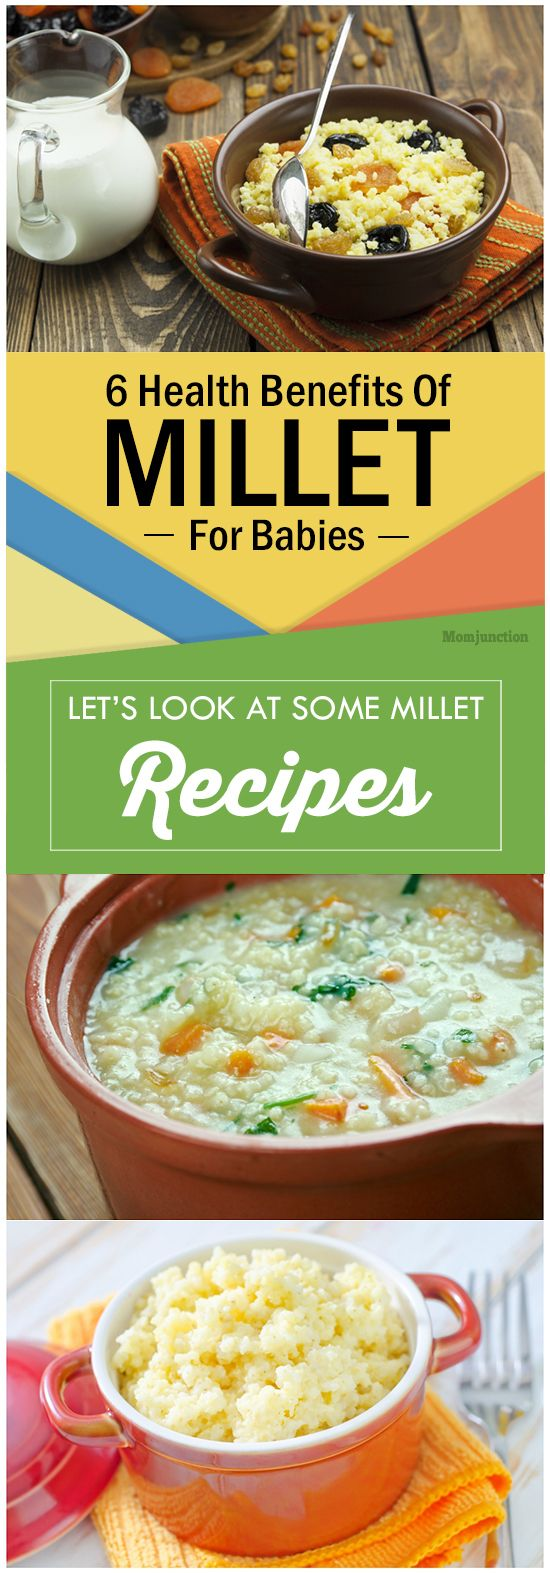 6 Amazing Health Benefits Of Millet For Babies: illets are an easily digestible, non-glutinous and nutritious meal. You can start feeding your six-month-old baby millet.